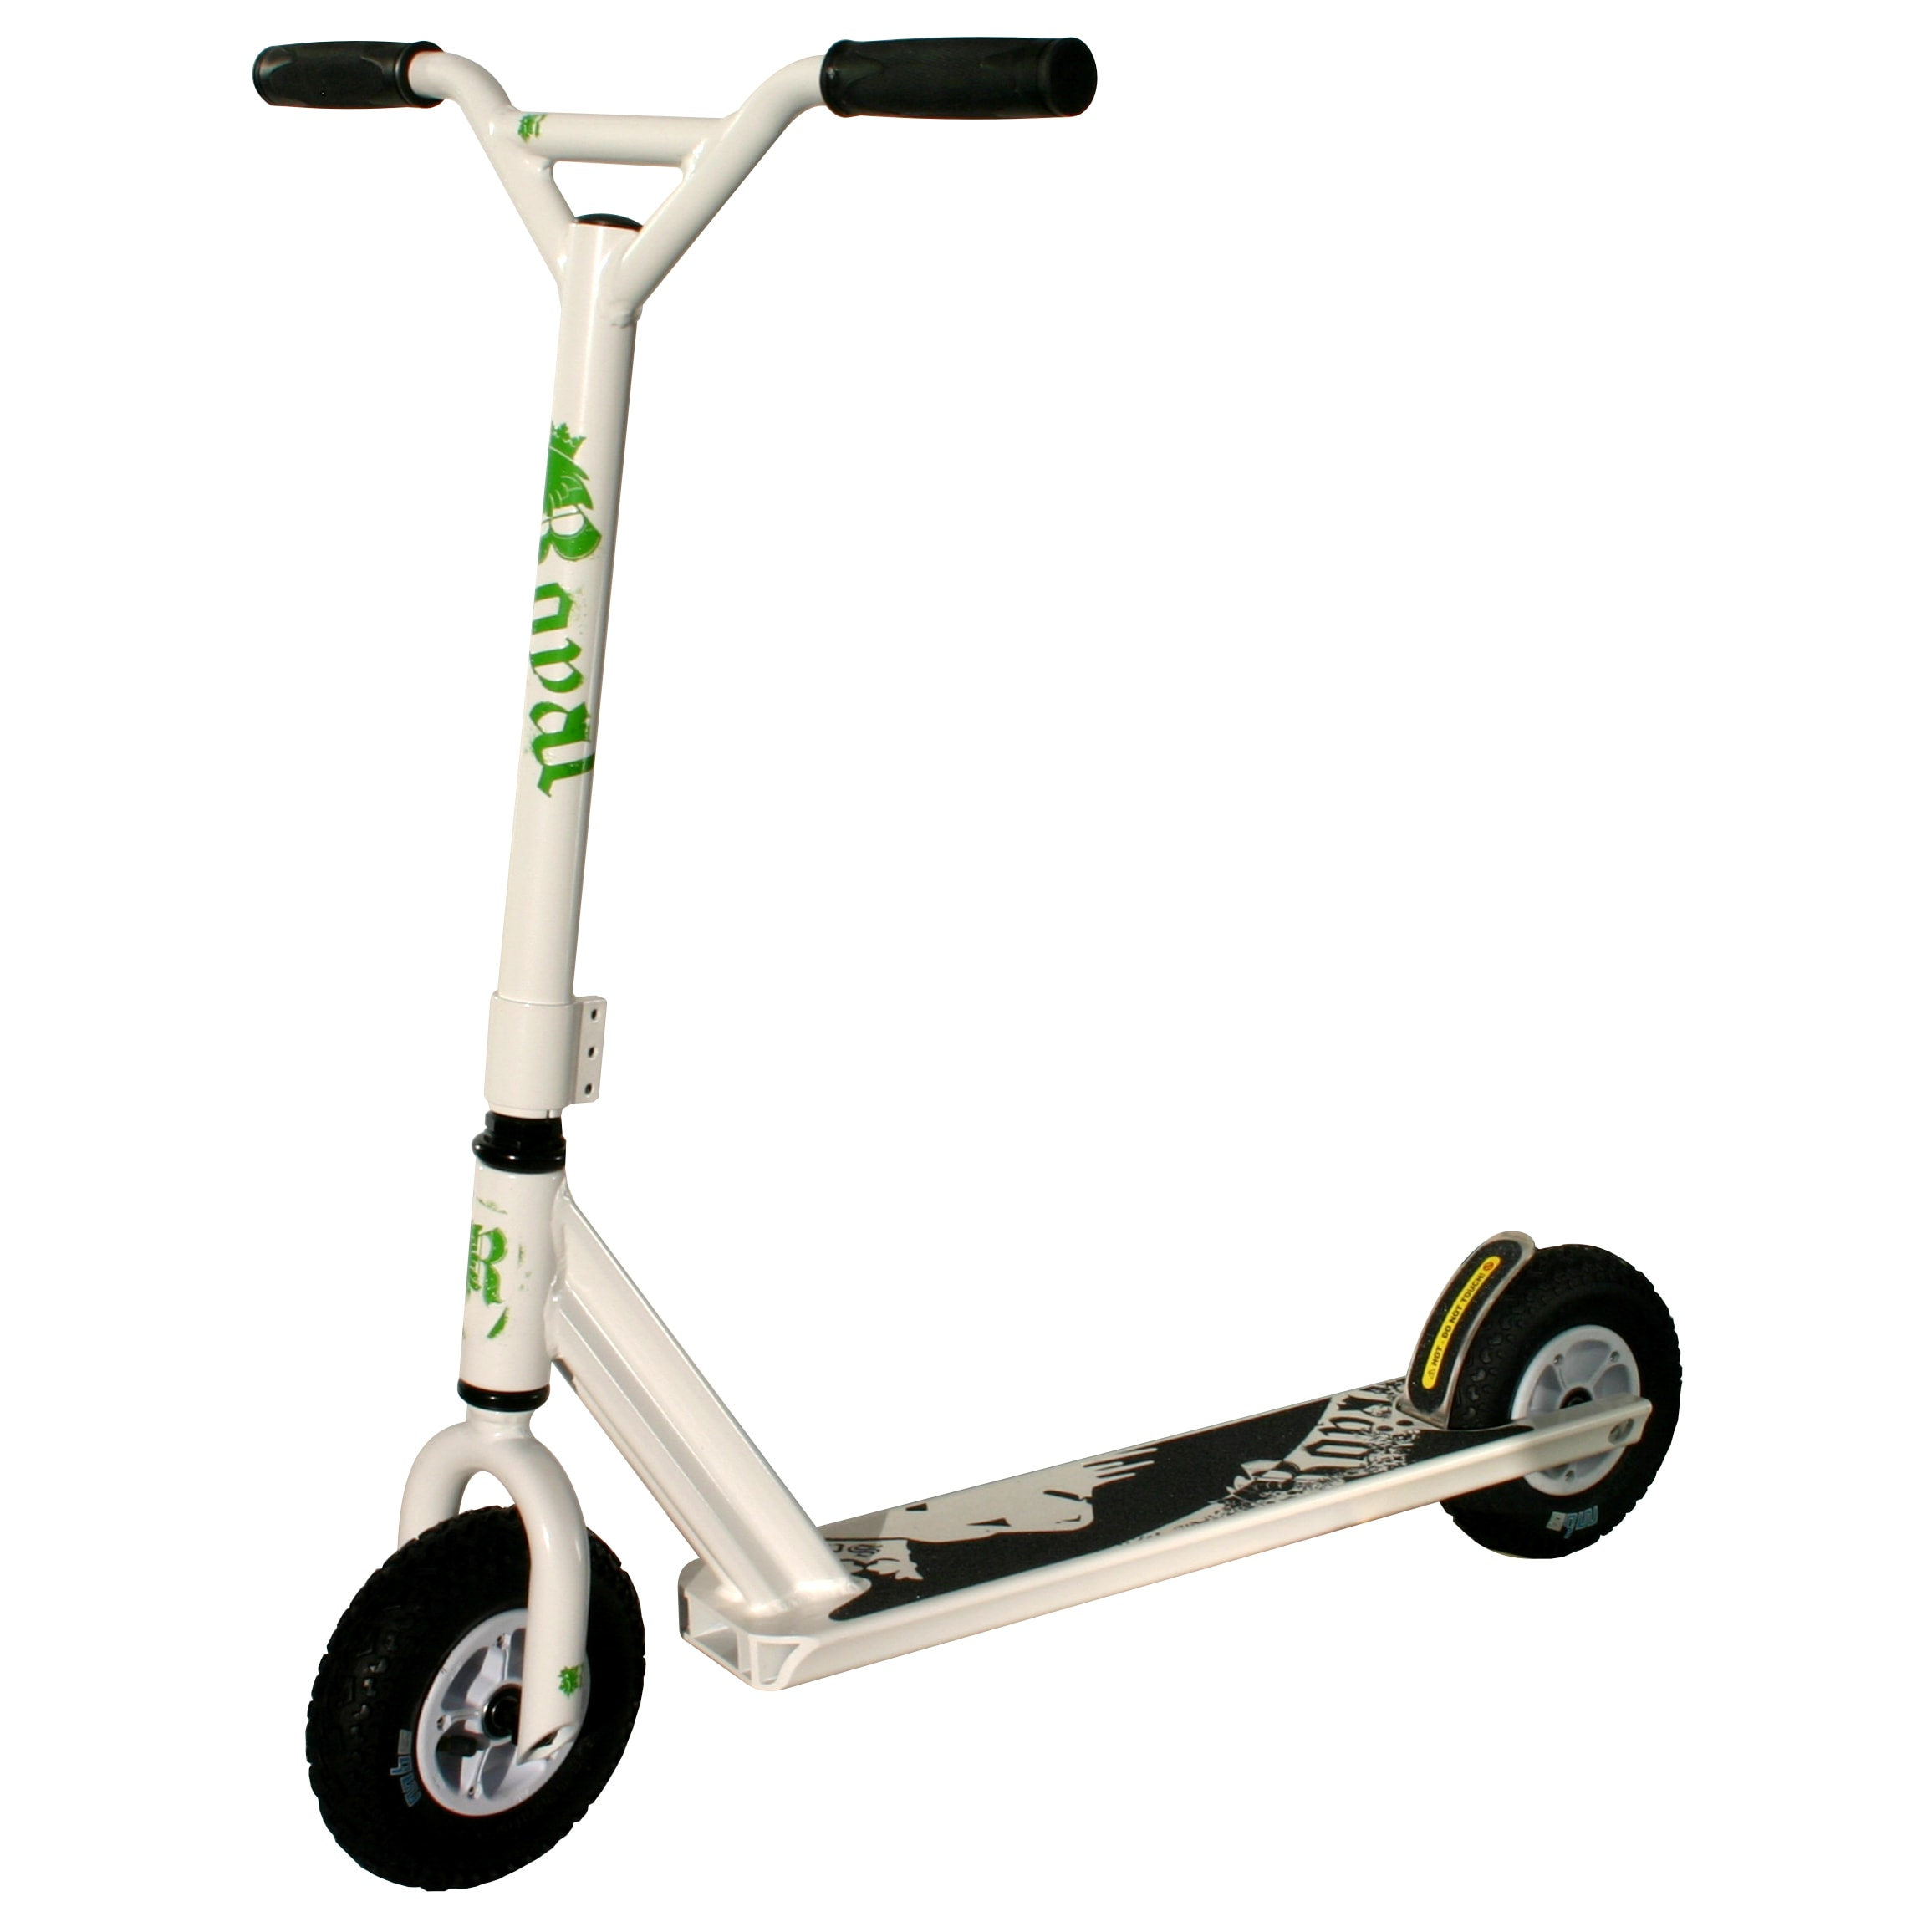 Image result for Razor RX200 Dirt Scooter